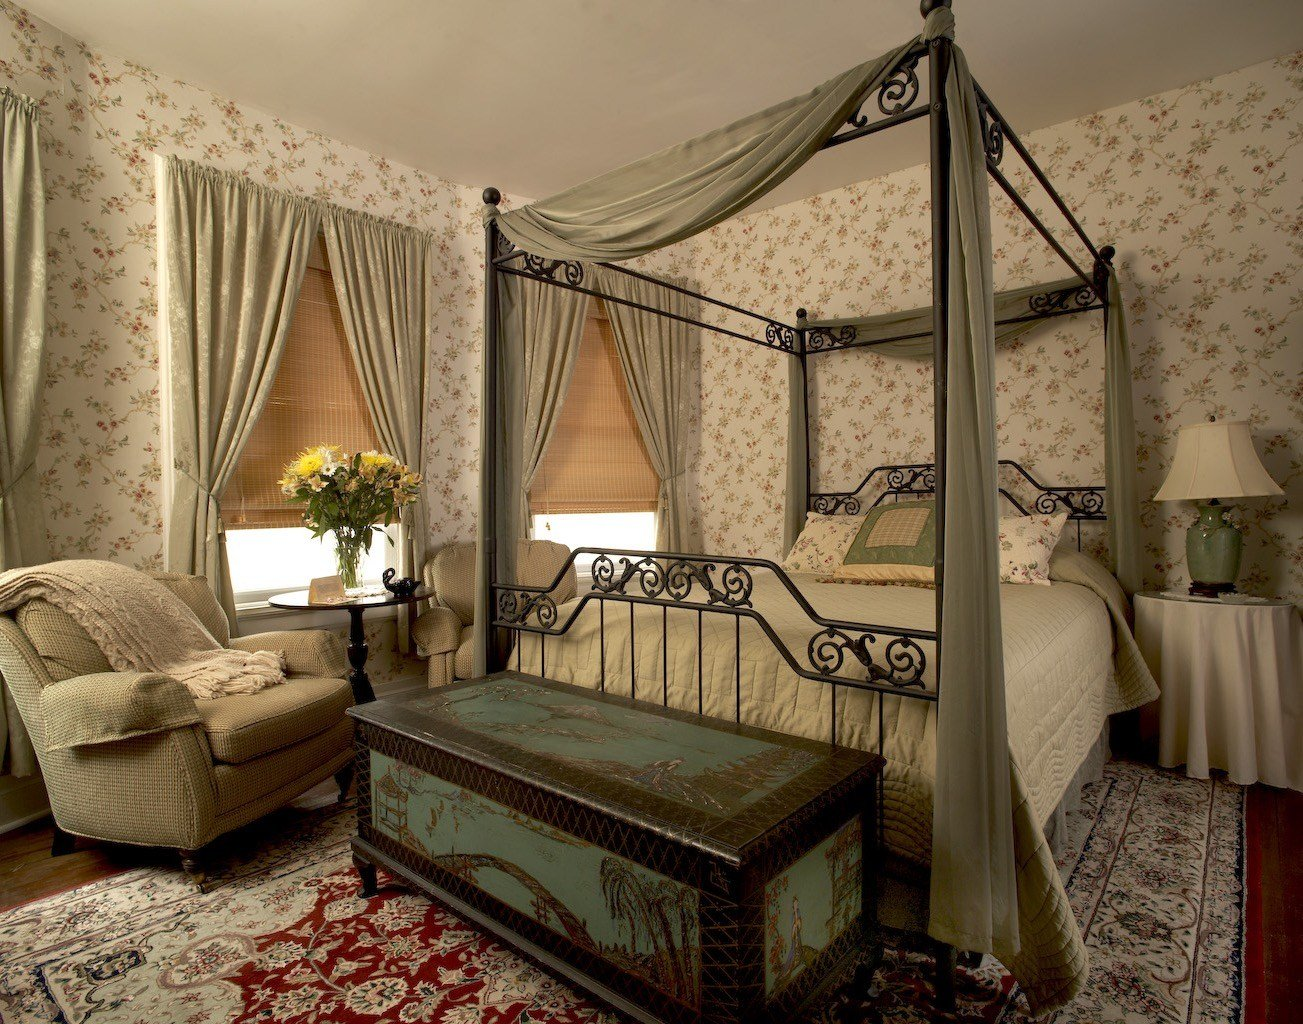 Best Victorian Decor Style For Comfortable Bedroom 15485 With Pictures